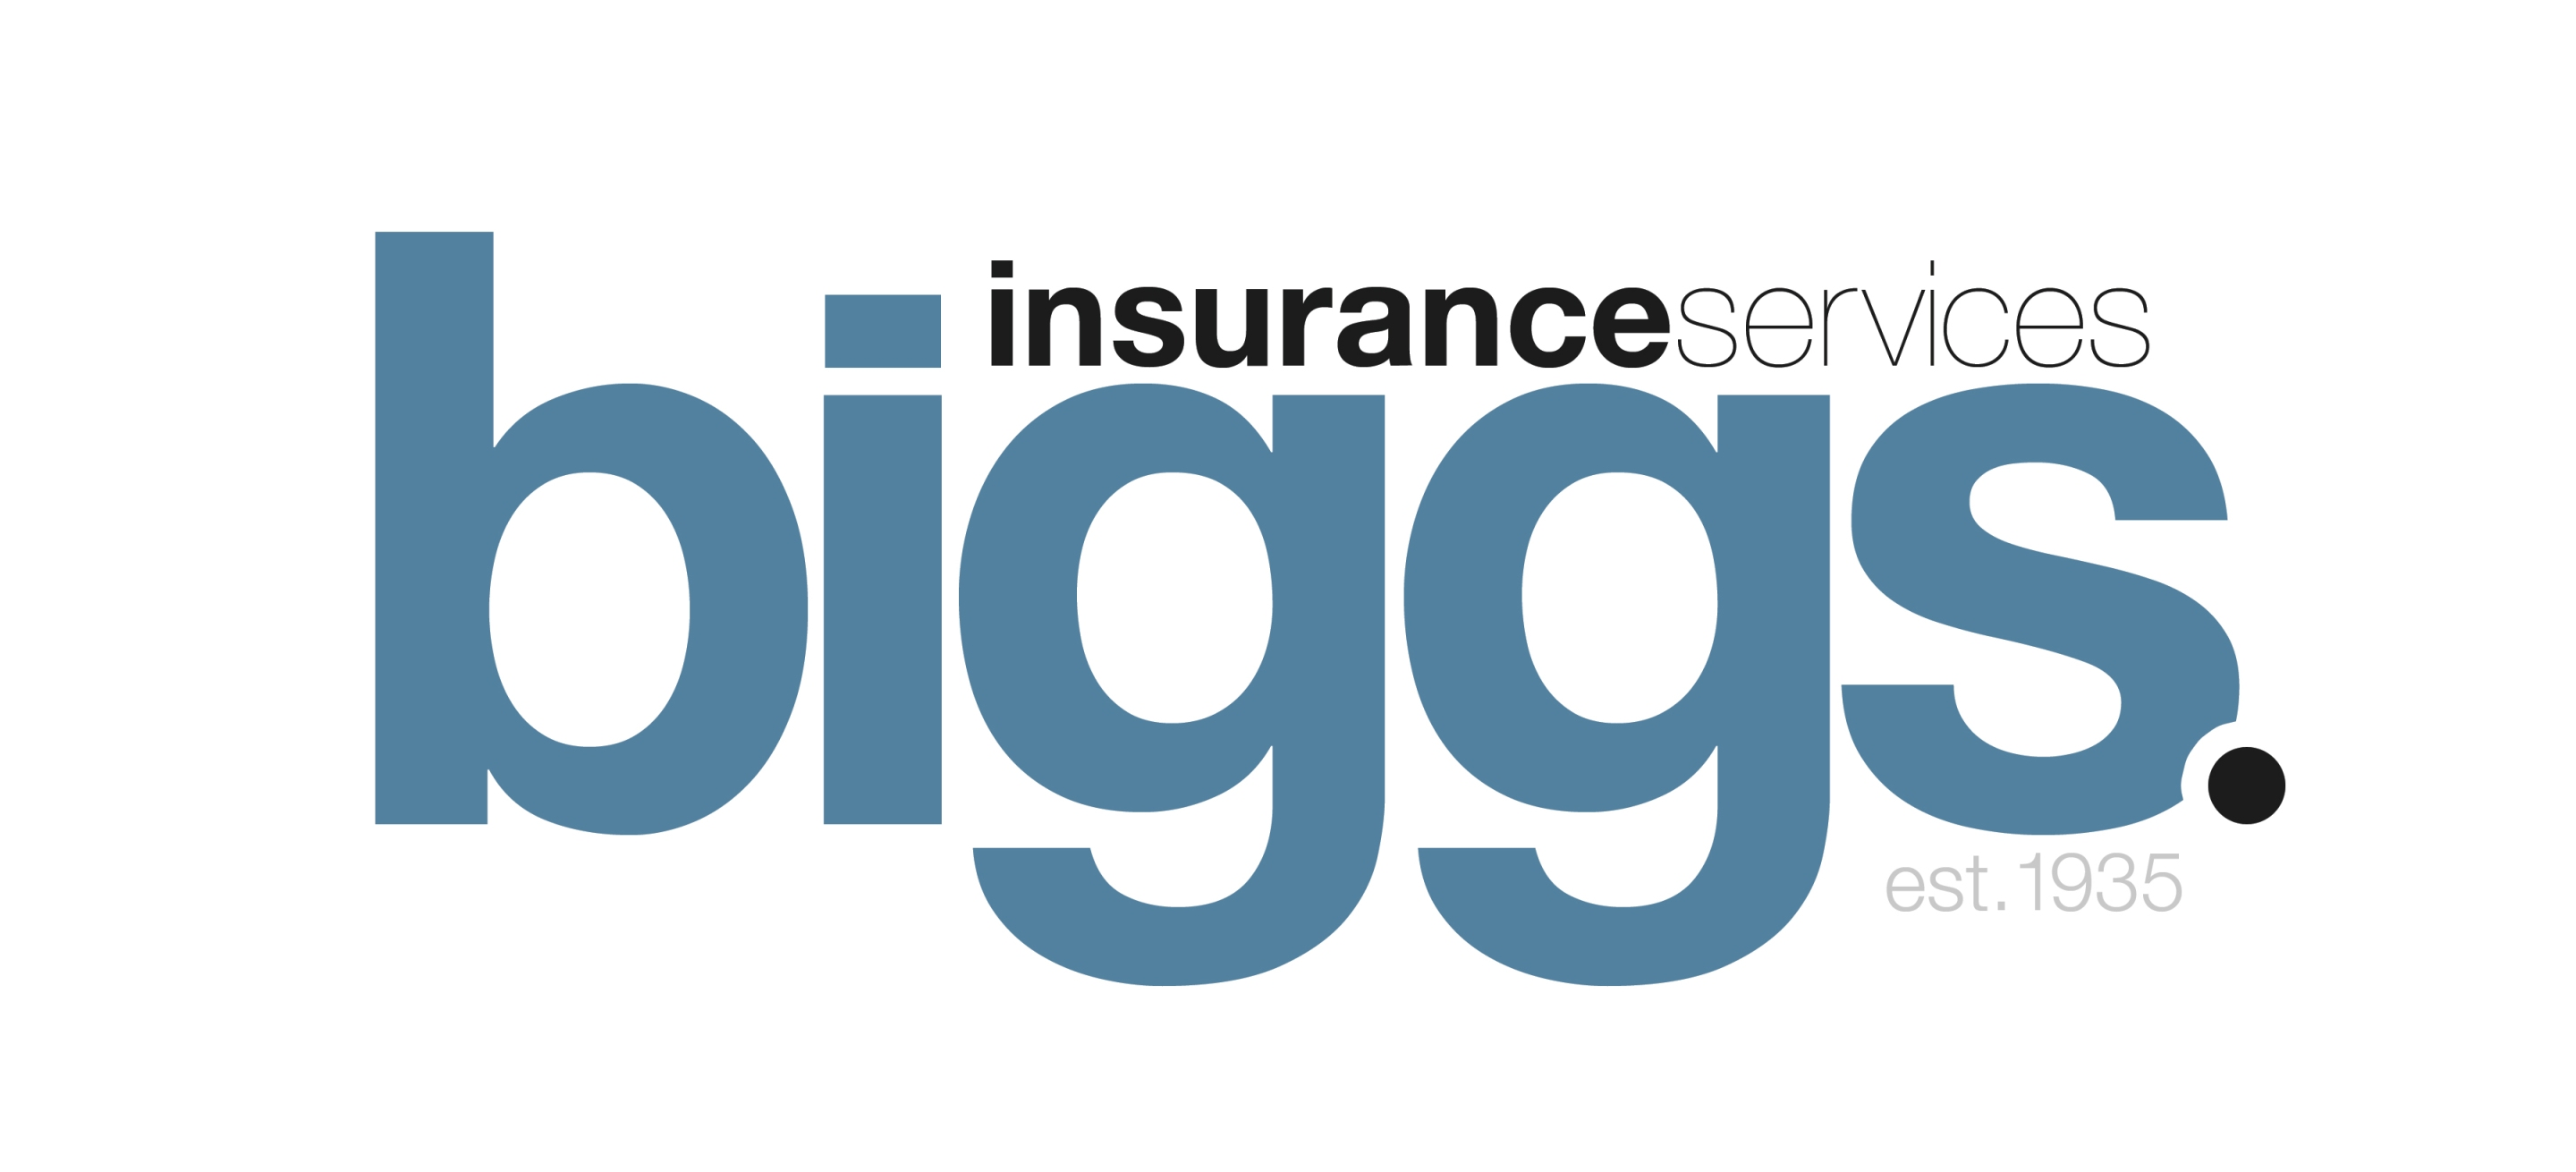 Biggs Insurance Serrvices